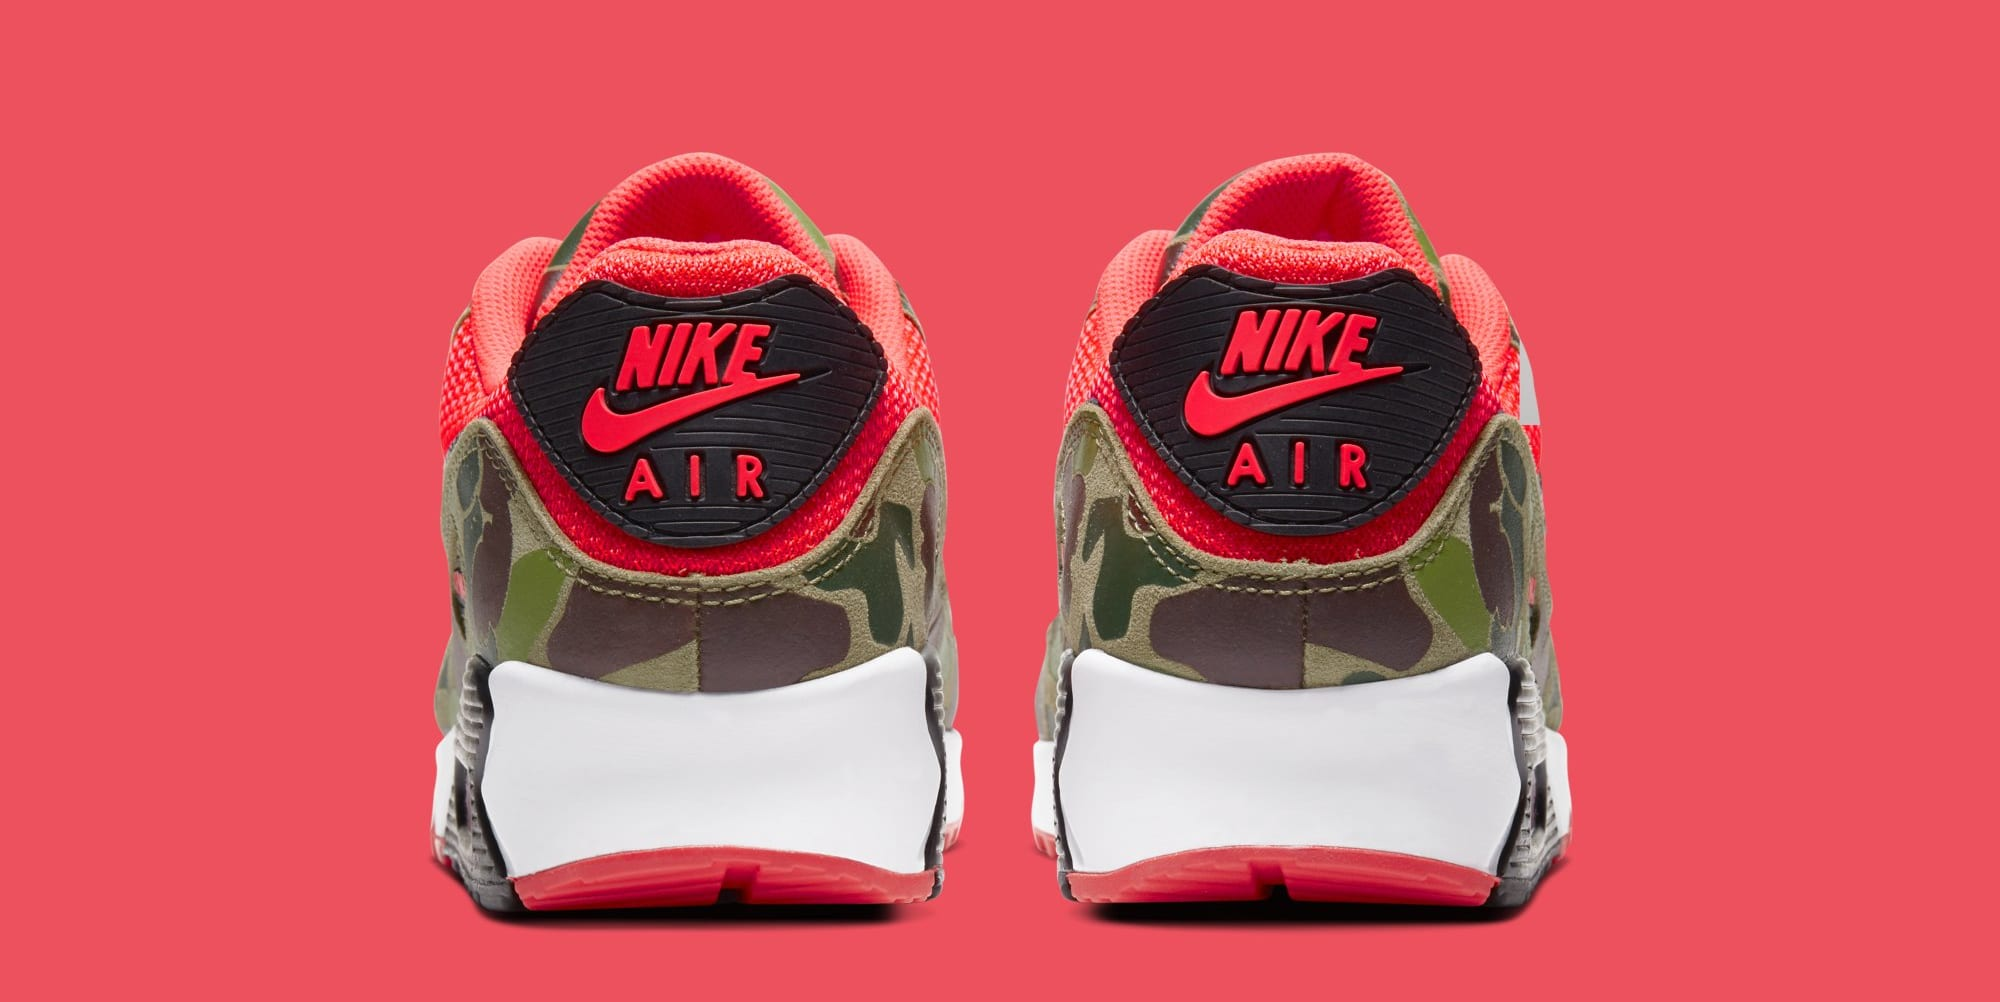 Nike Air Max 90 'Infrared Duck Camo' CW6024-600 (Heel)